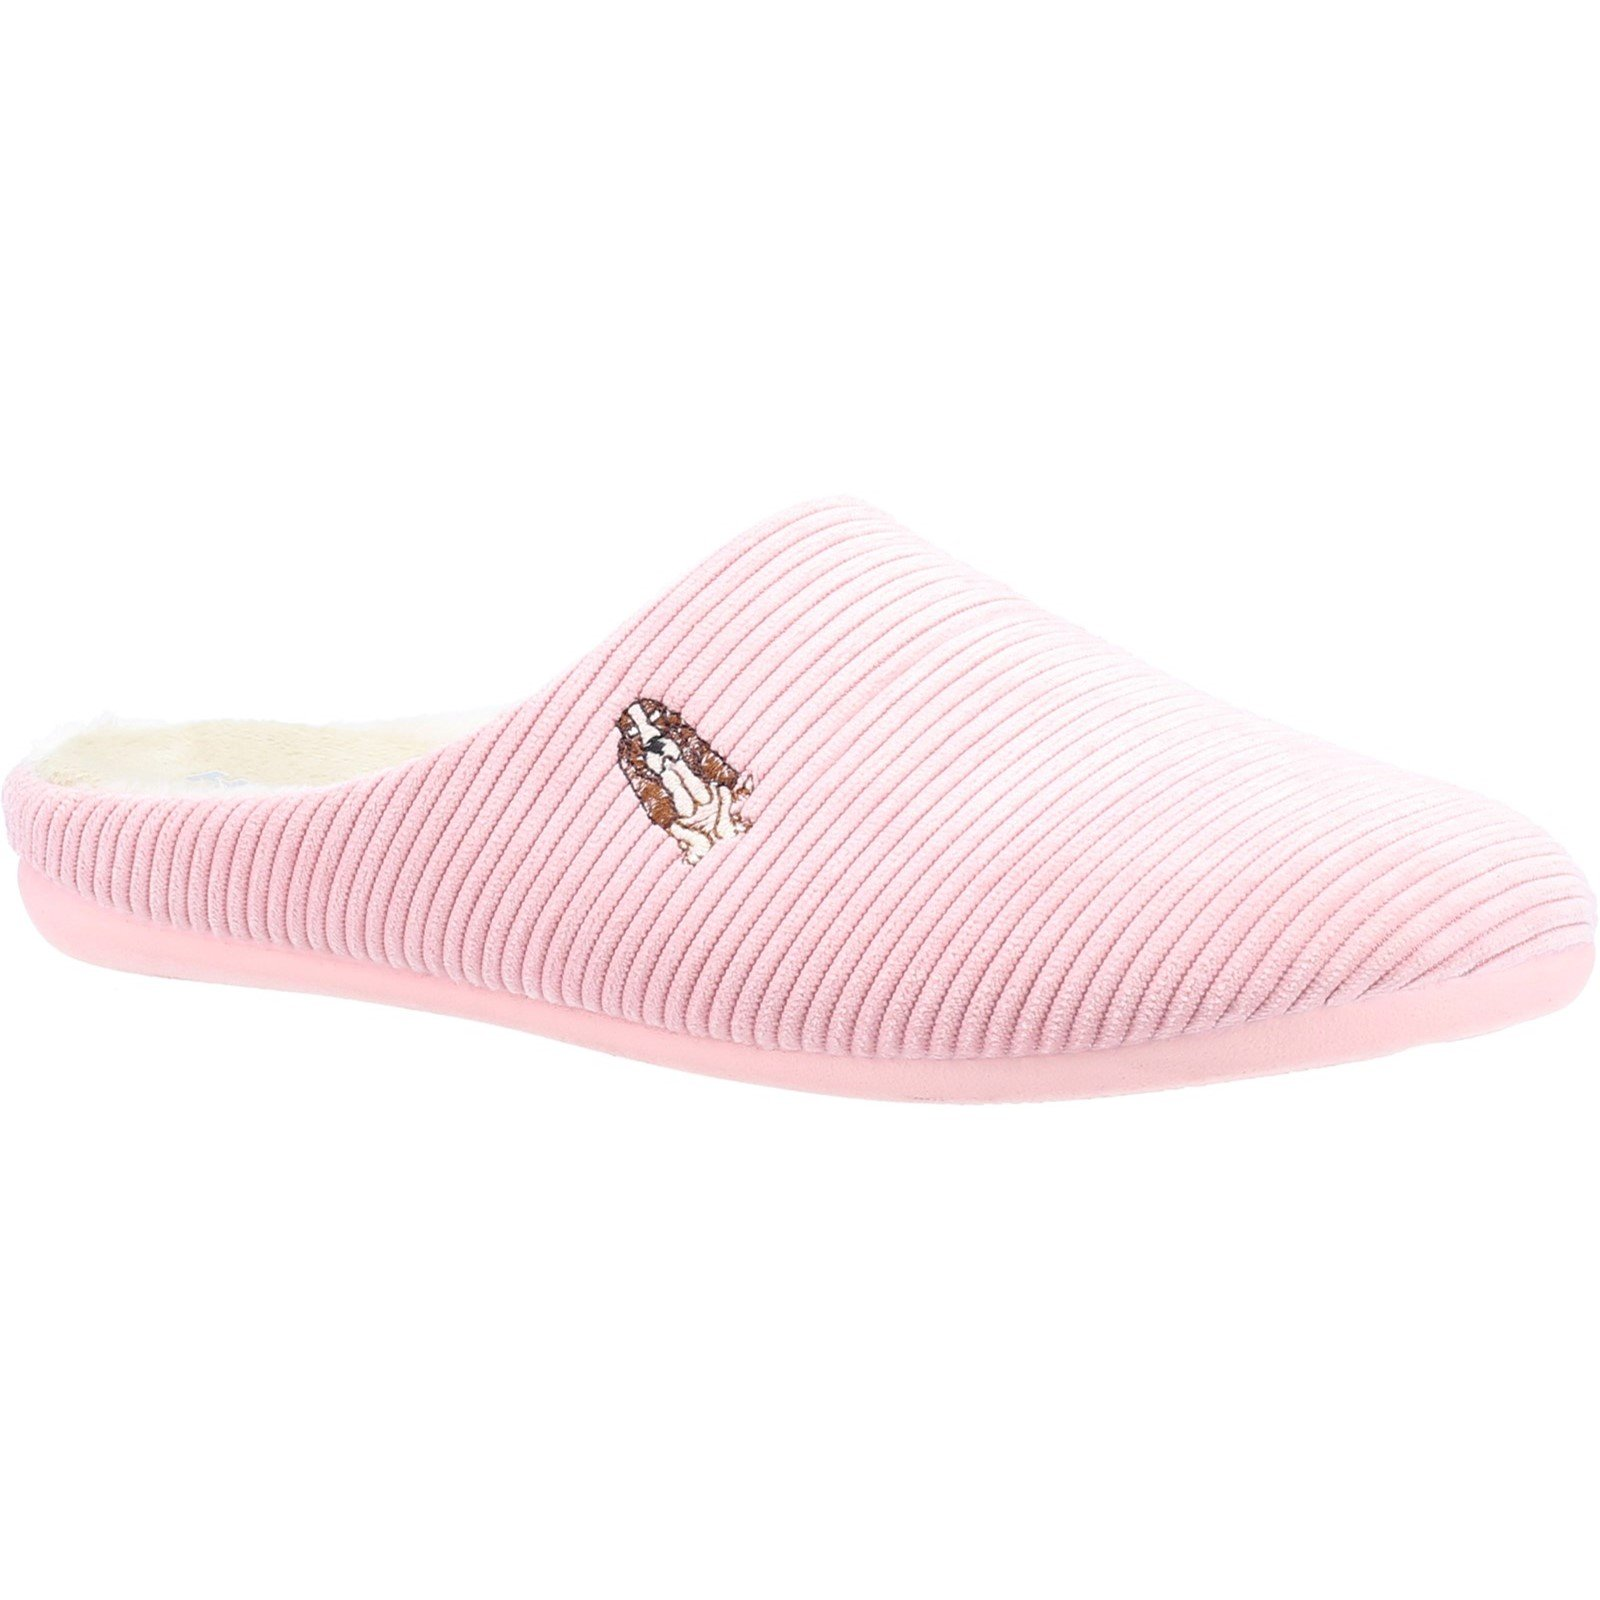 Hush Puppies Women's Raelyn Slipper Various Colours 32854 - Pink 3